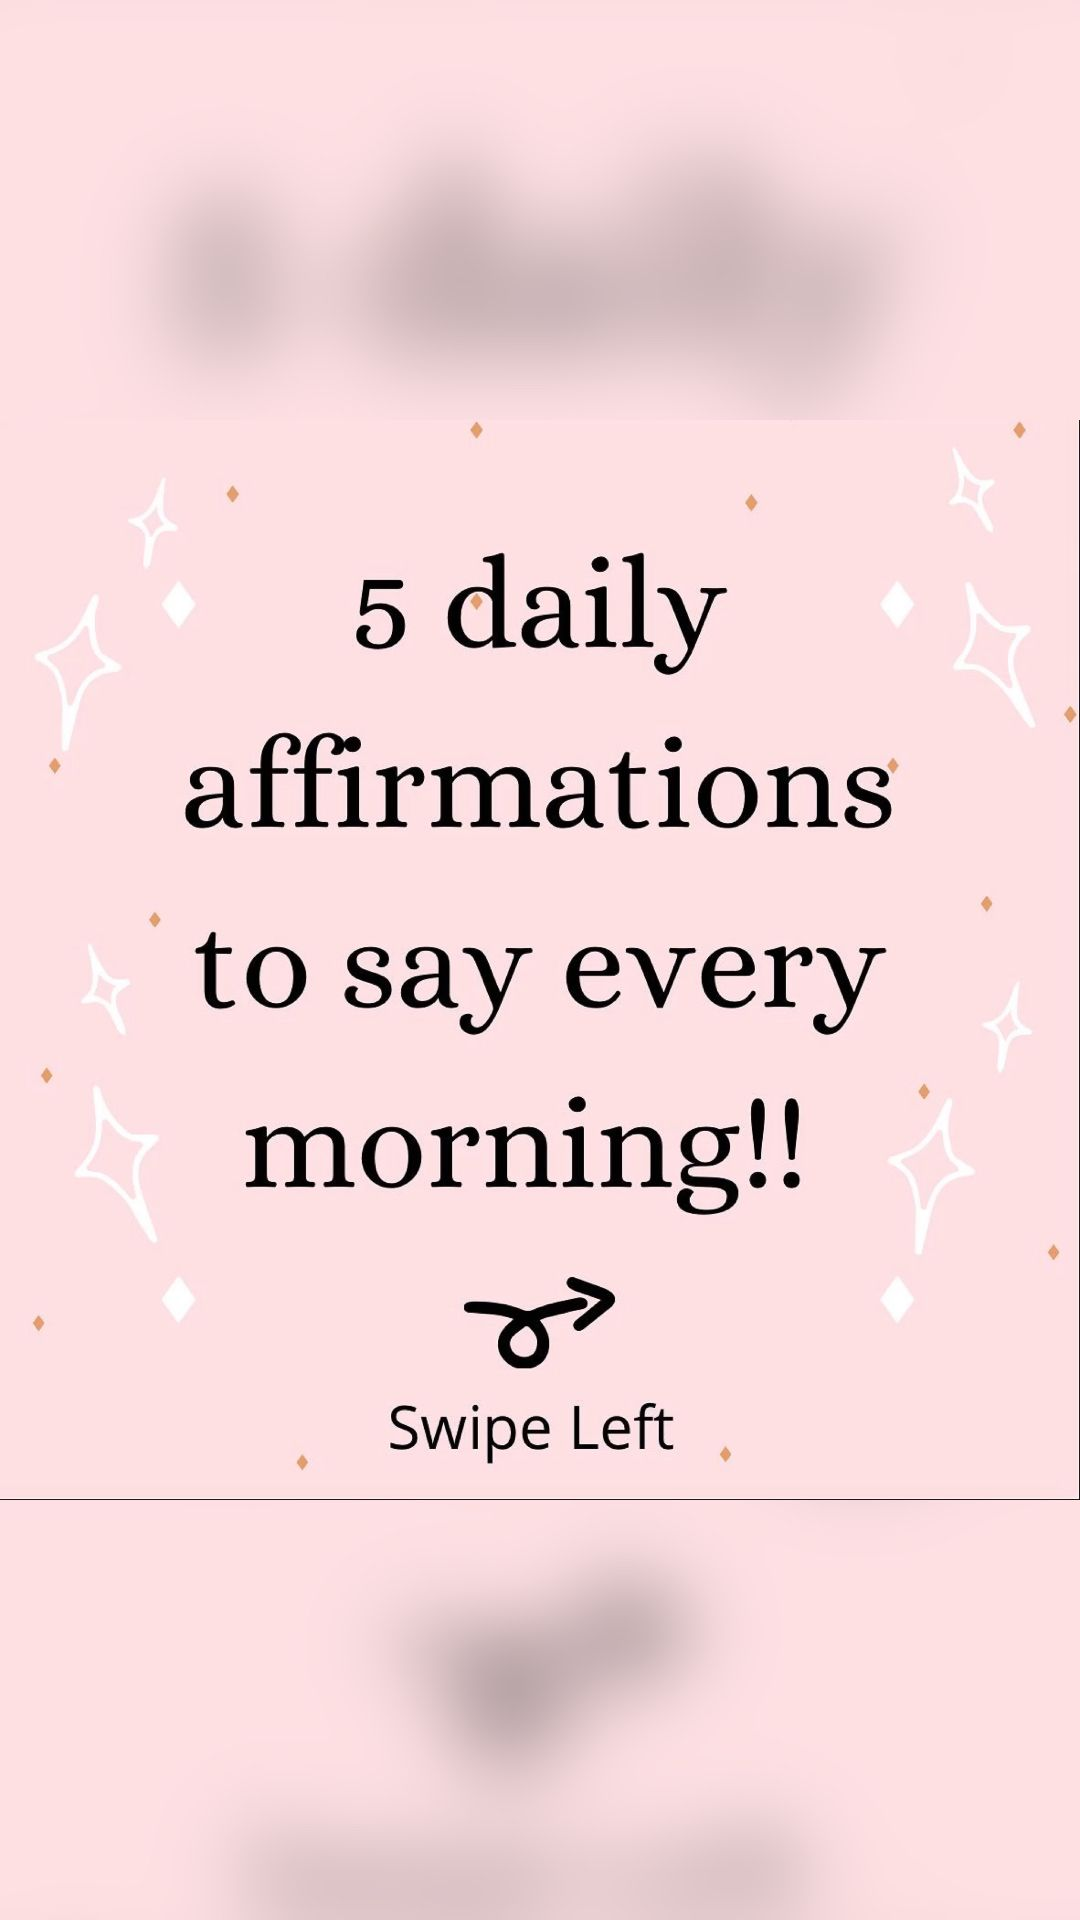 Five Daily Affirmations to say in the Morning